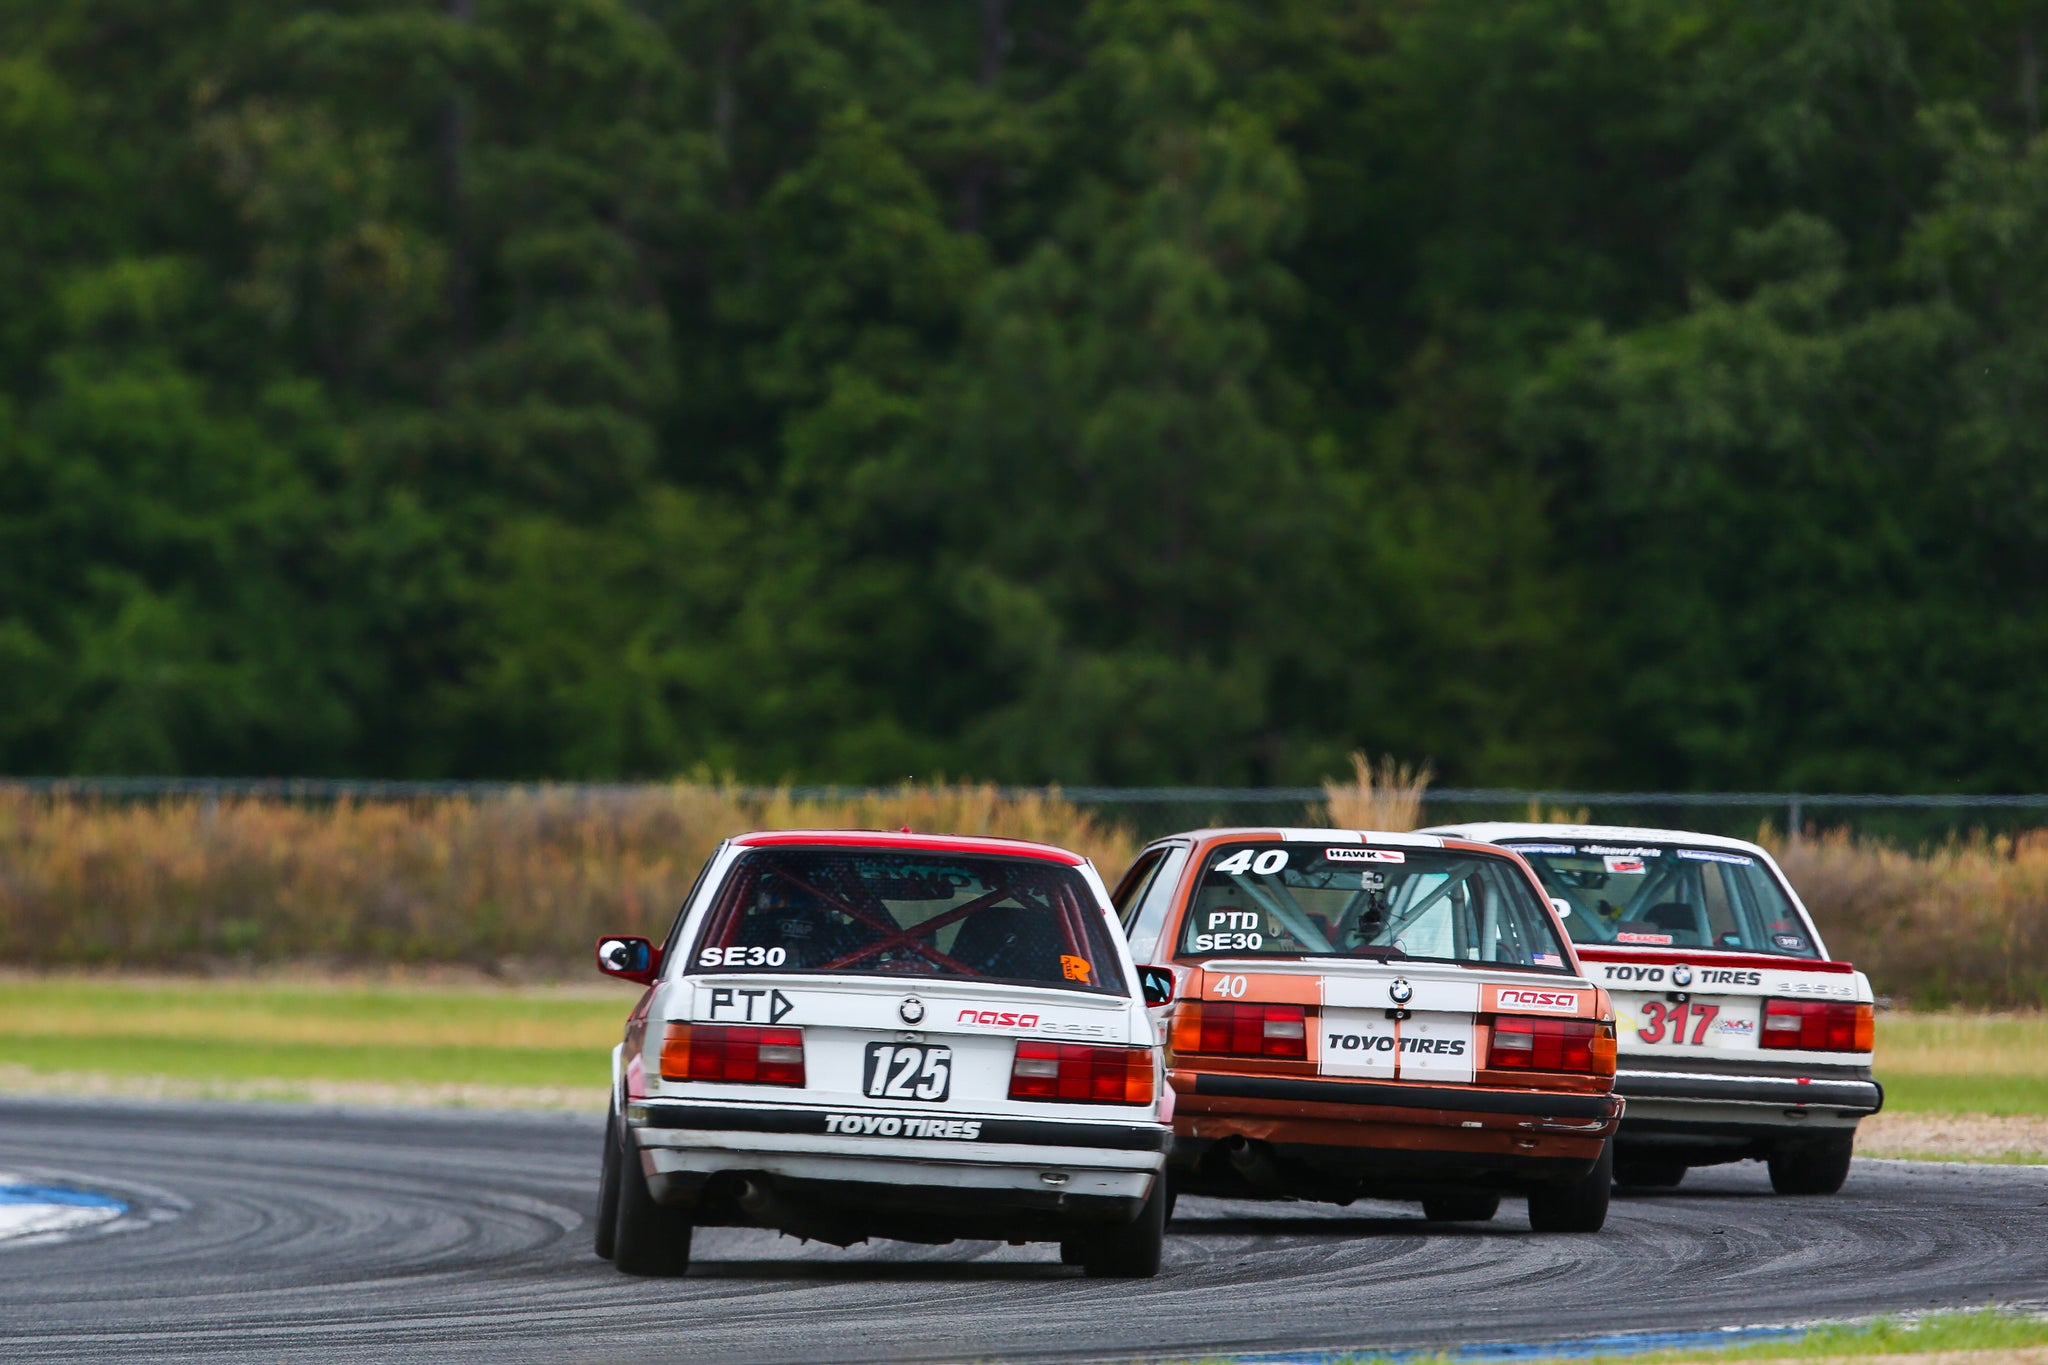 Dancing on the limit at Roebling Road Raceway